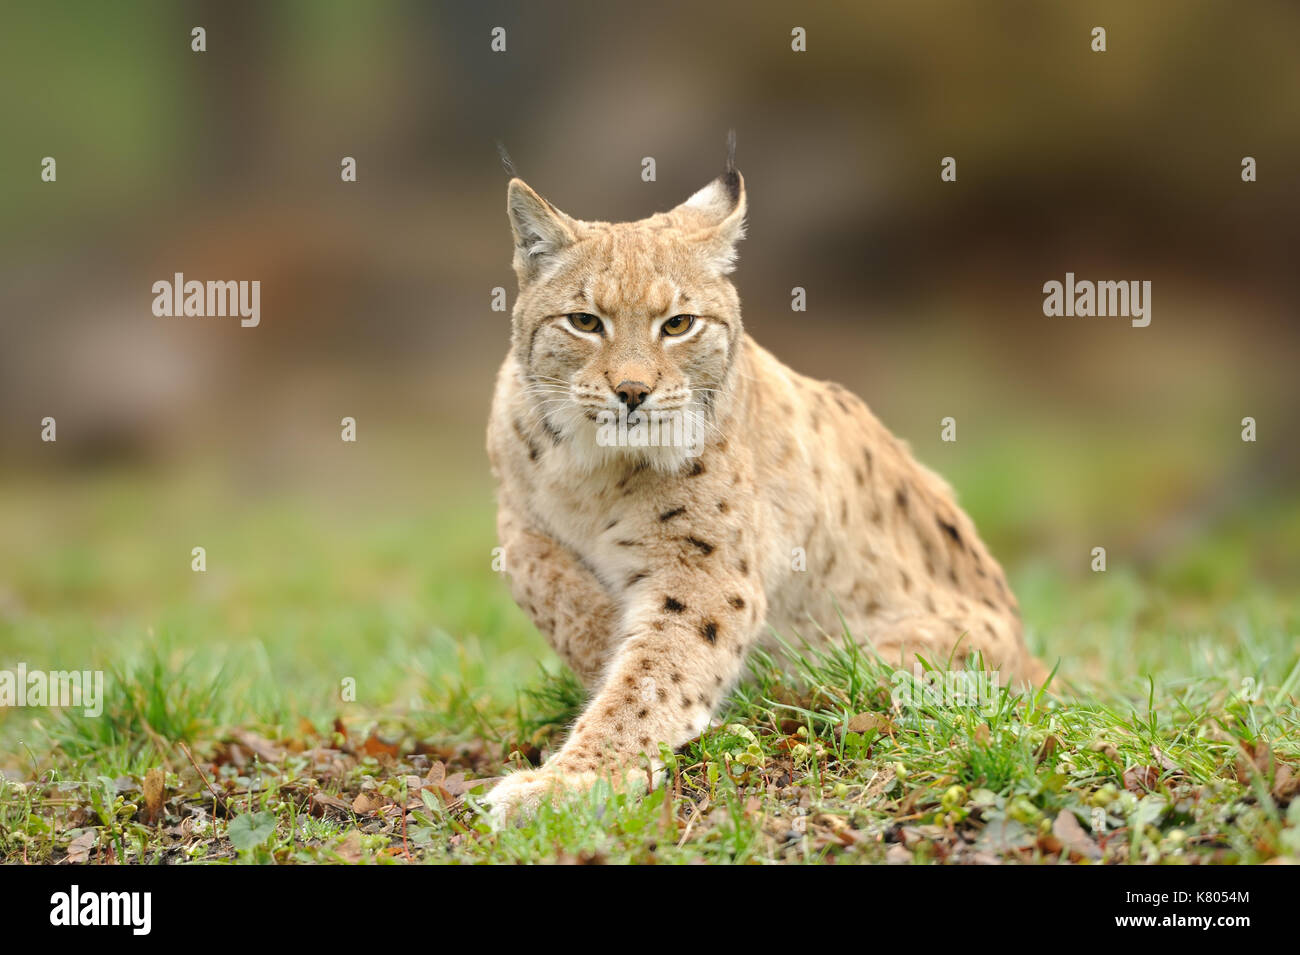 Lynx, Eurasian wild cat walking on forest in background. Beautiful animal in the nature habitat. Wildlife hunting Stock Photo